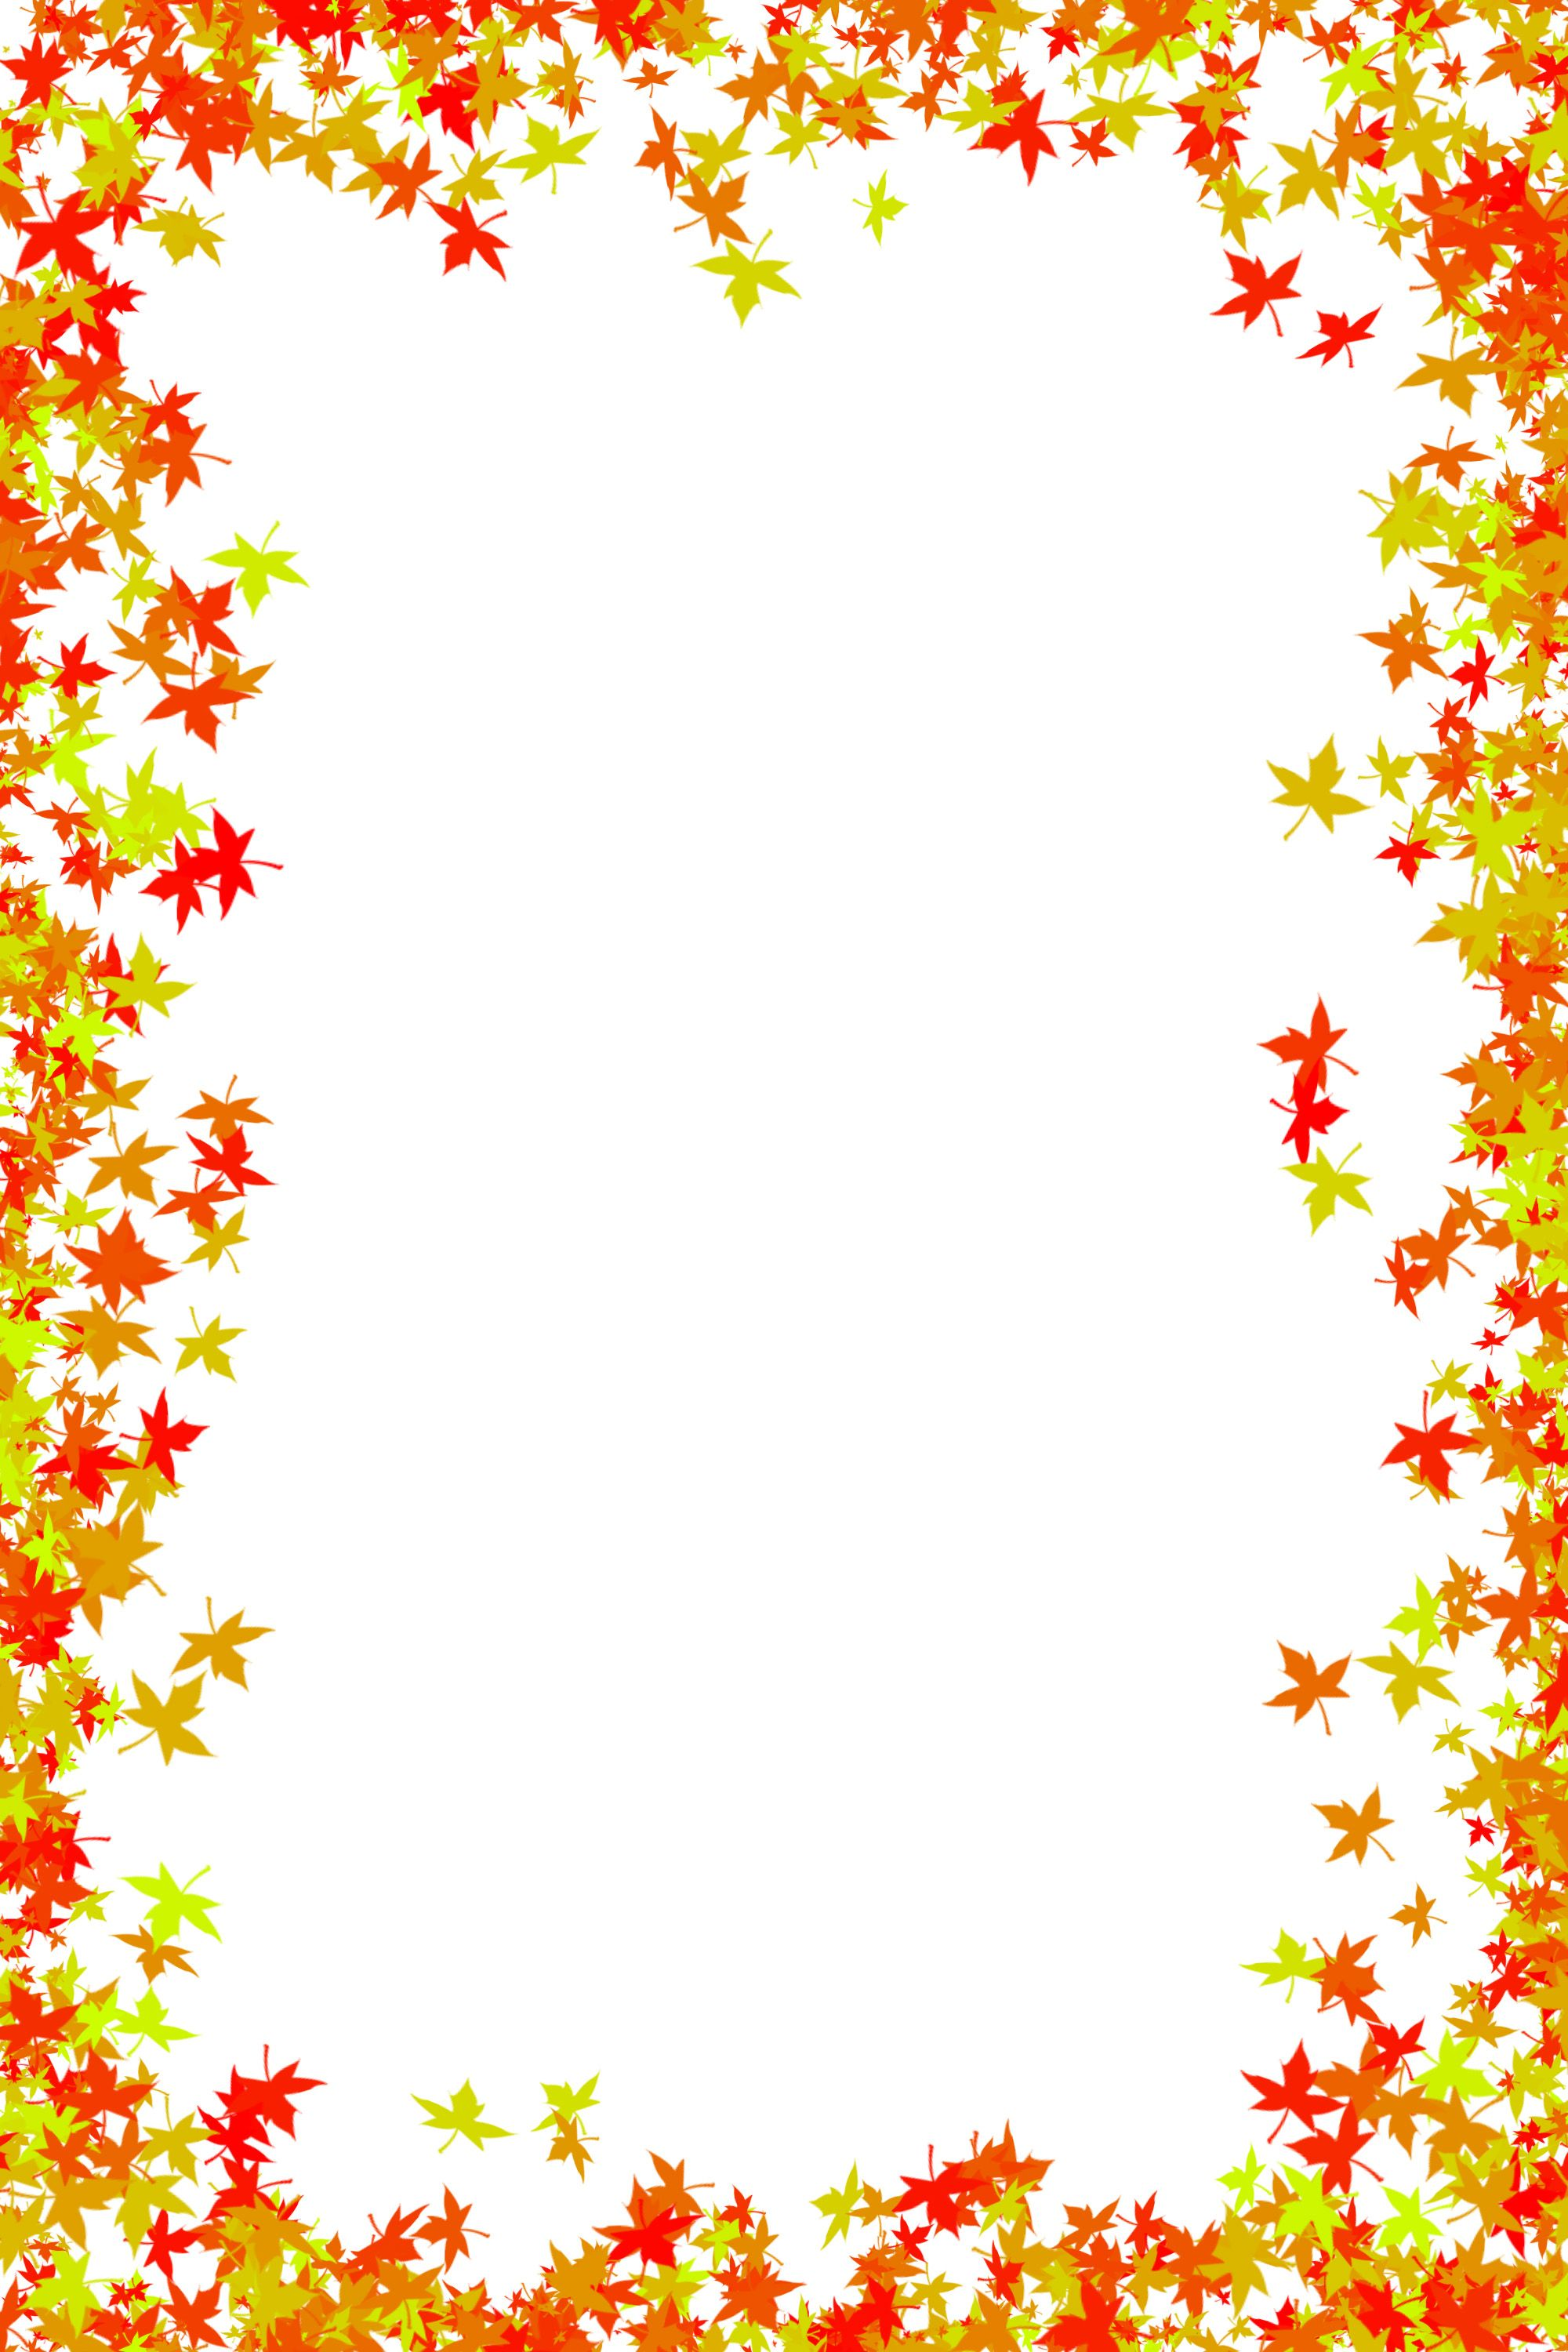 Maple Graphic Design Leaves Autumn Frame Free Backgrounds And Textures Cr103